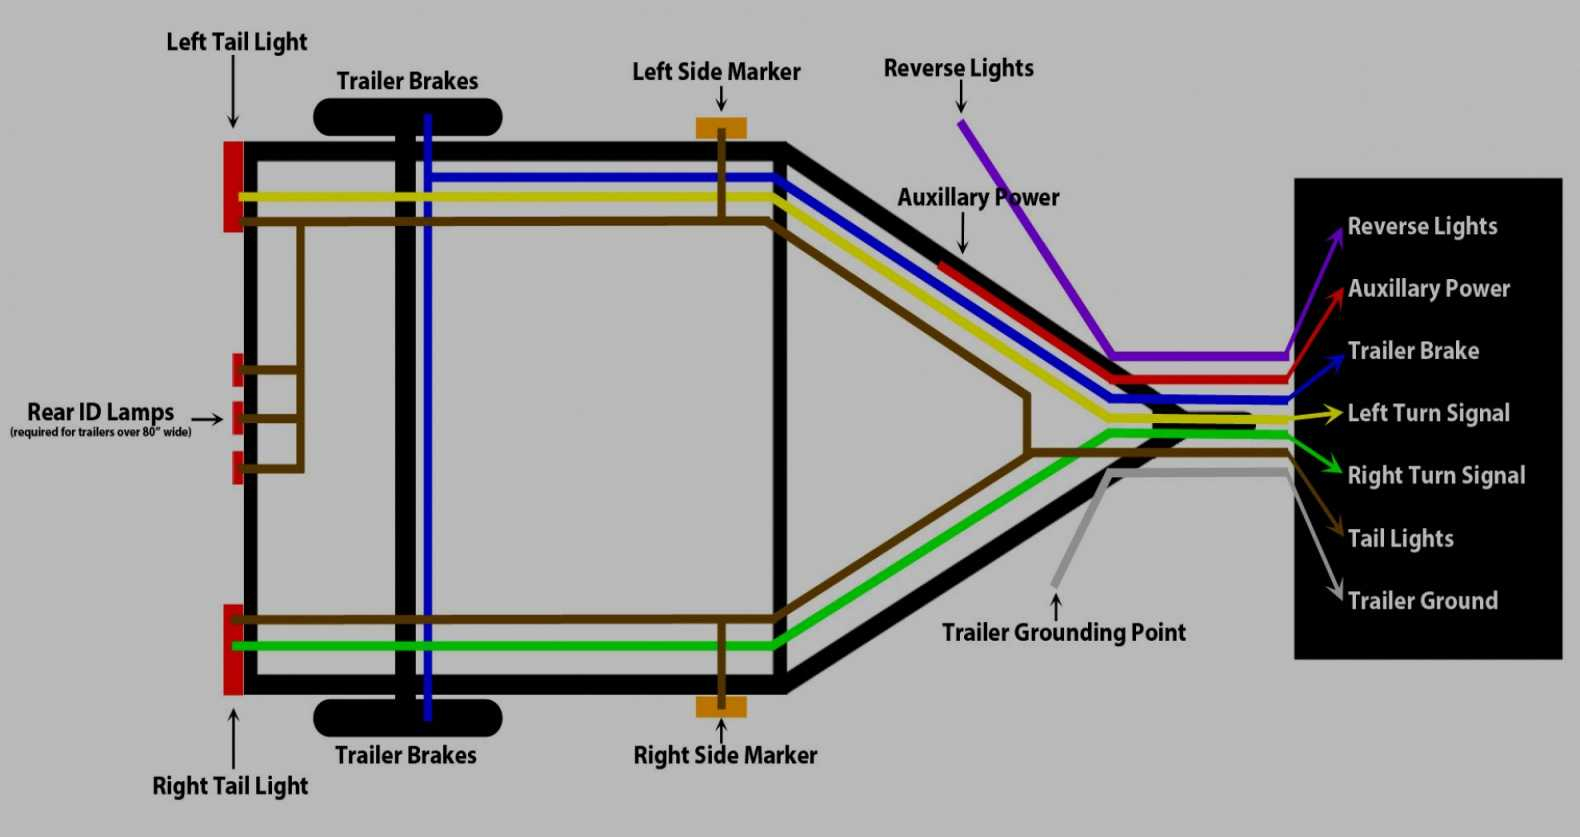 Boat Trailer Lights Wiring Diagram - Wiring Diagram Write on 7 prong trailer wiring harness for boat, 12' sea nymph aluminum boat, 4 pin trailer light diagram, 4 pin trailer wiring diagram wires, 4 pin wiring diagram for light reading,